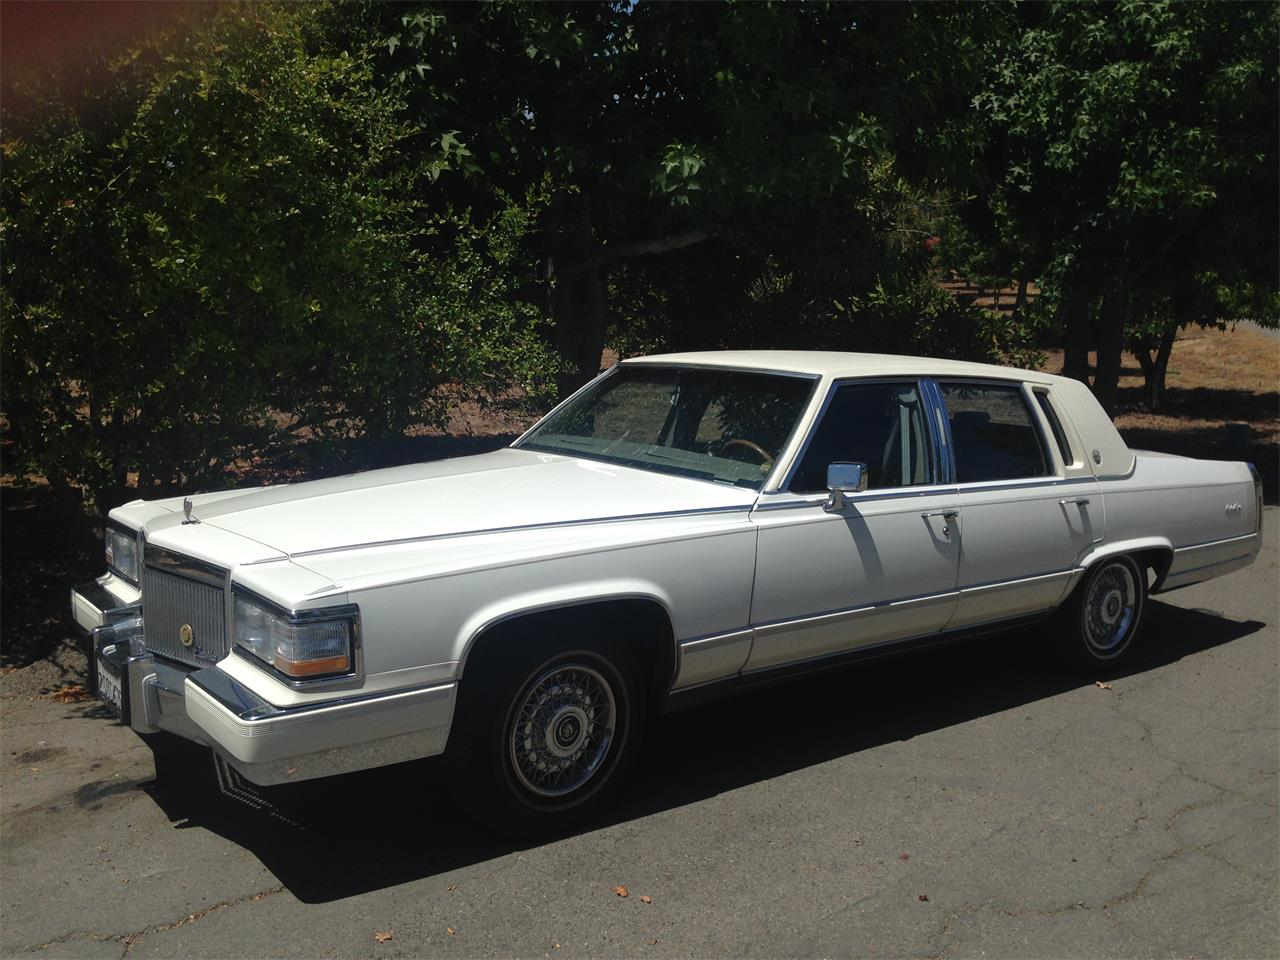 Large Picture of '90 Brougham d'Elegance located in California Offered by a Private Seller - LR7K